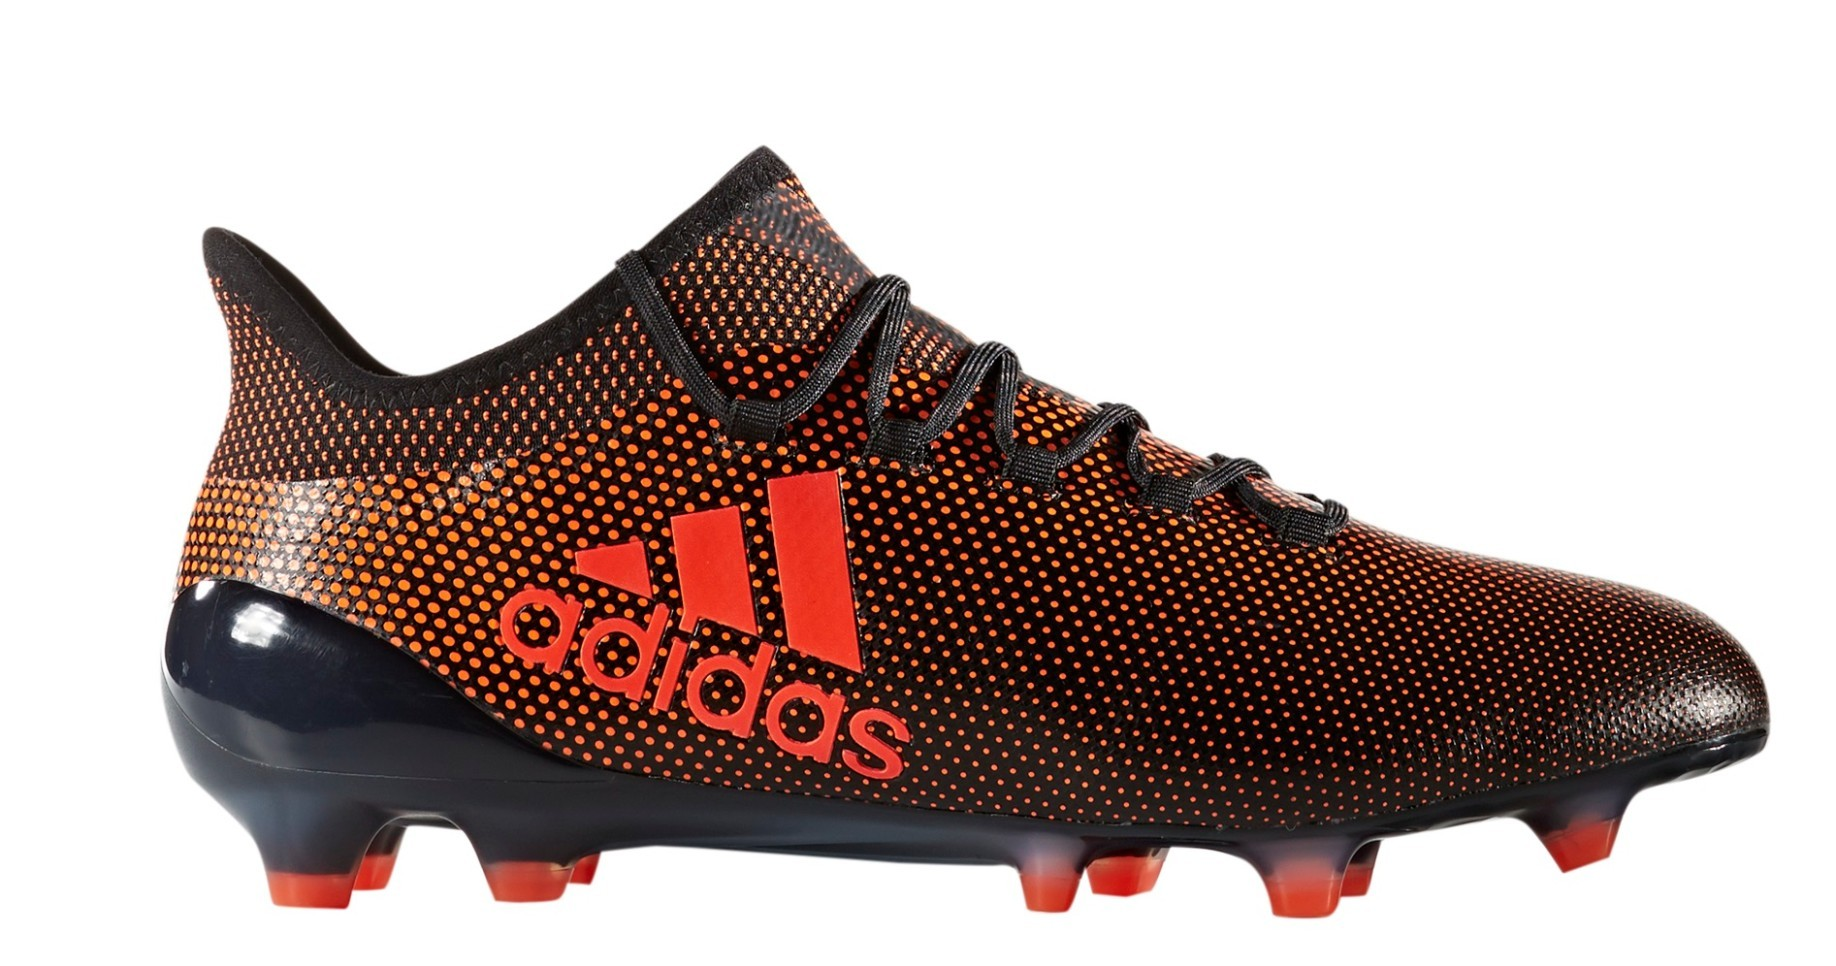 new style 96373 5a877 Football boots Adidas X 17.1 FG Pyro Storm Pack